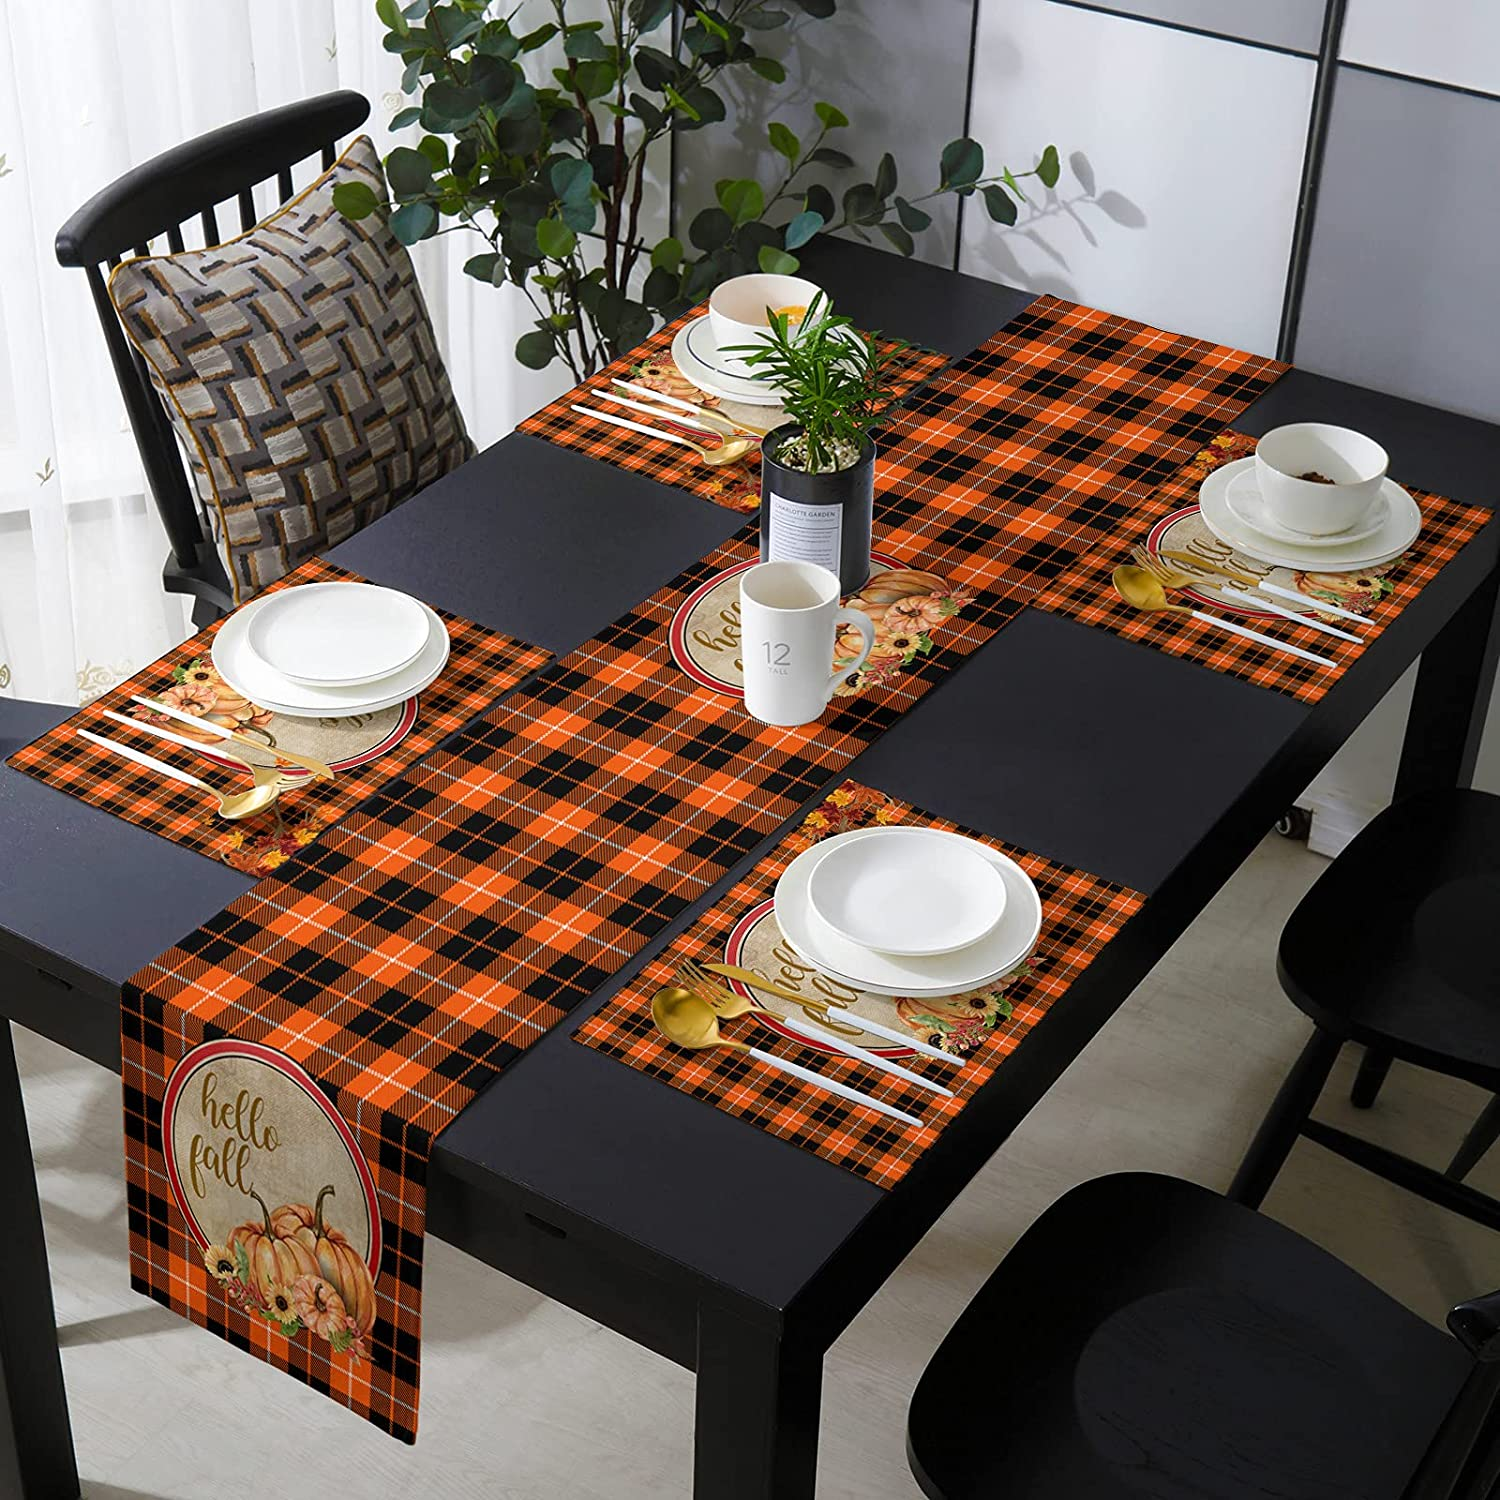 Table Runner Fees free!! and 4 Save money Pieces Cotton 16